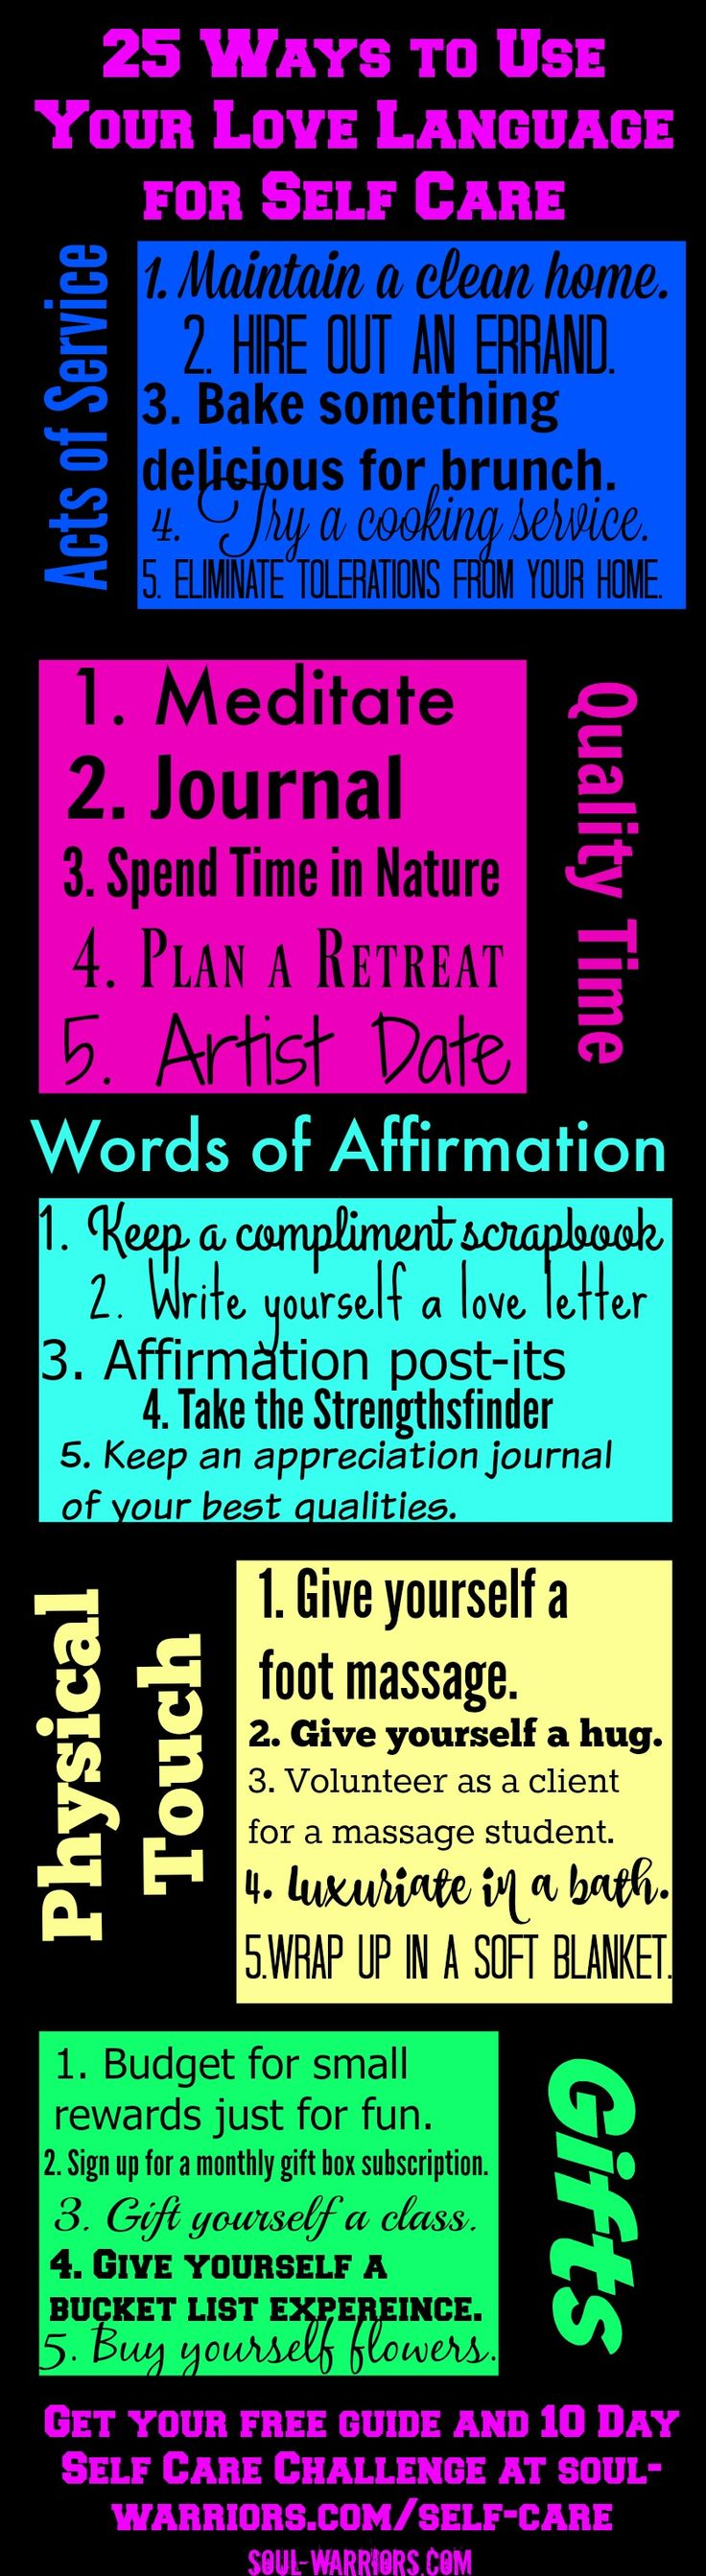 Use your Love Language for Self Care to get the most out of your self care activities. Check out this list of 25 ideas and a free 10 day email challenge at: http://www.soul-warriors.com/25-ways-use-love-language-for-self-care/